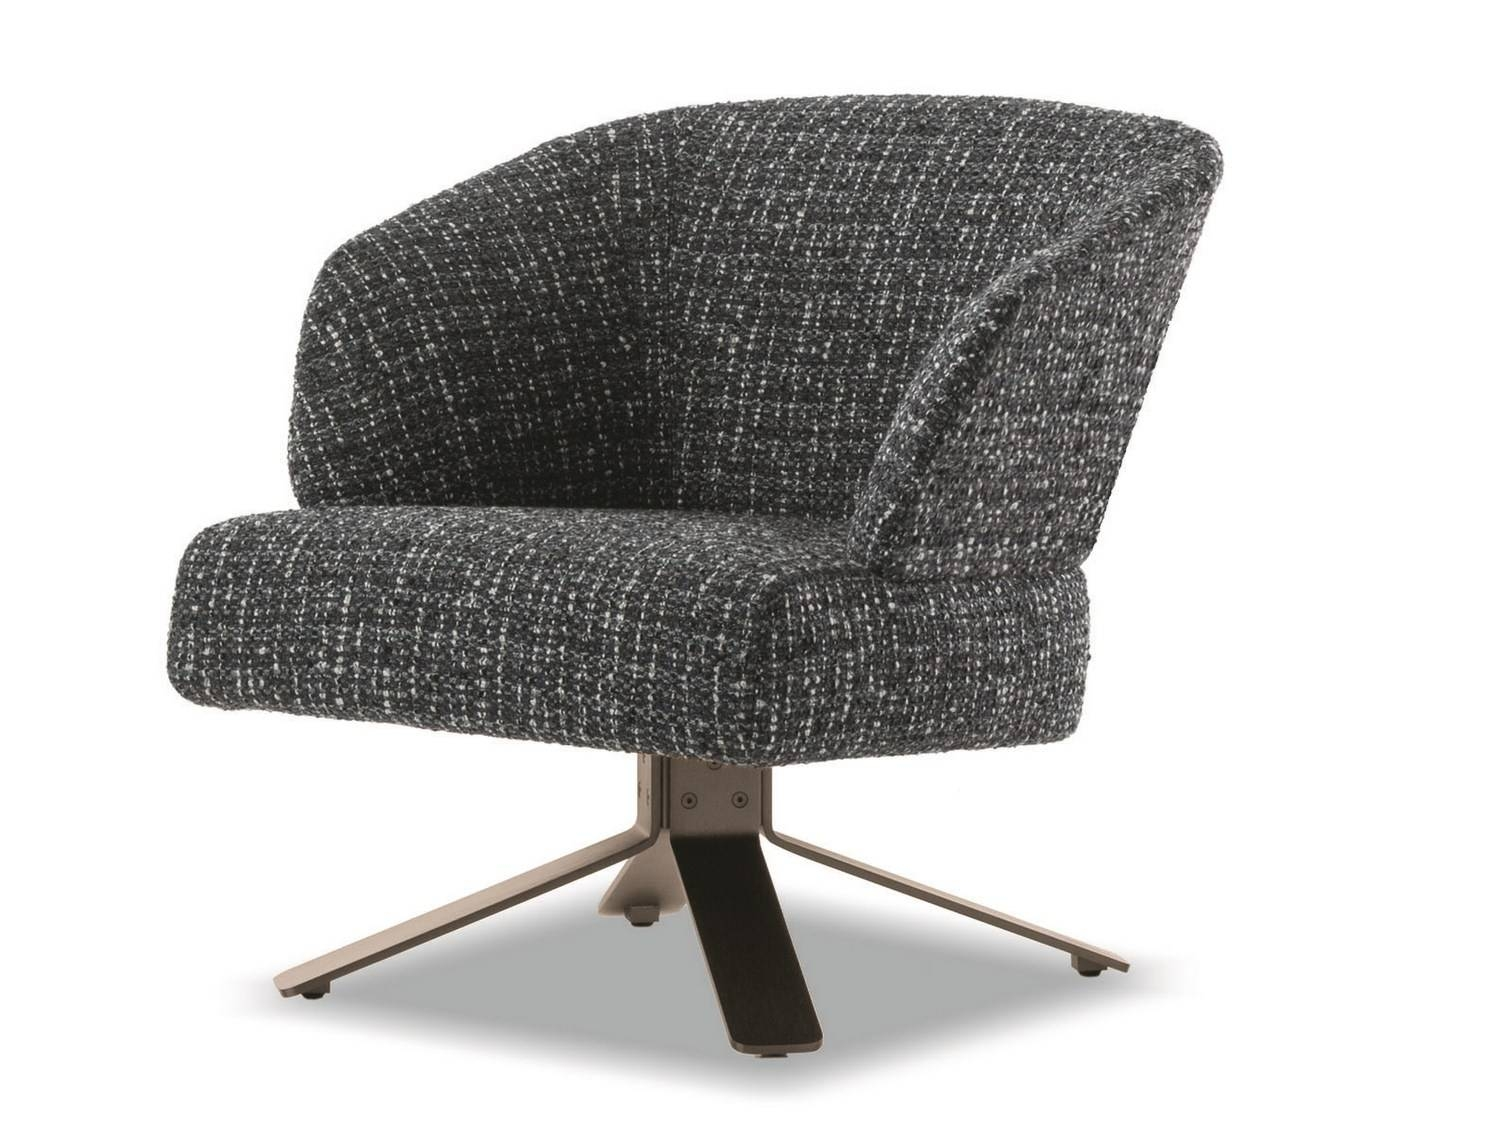 Easy Chair Creed Smallminotti in Compact Armchairs (Image 18 of 30)